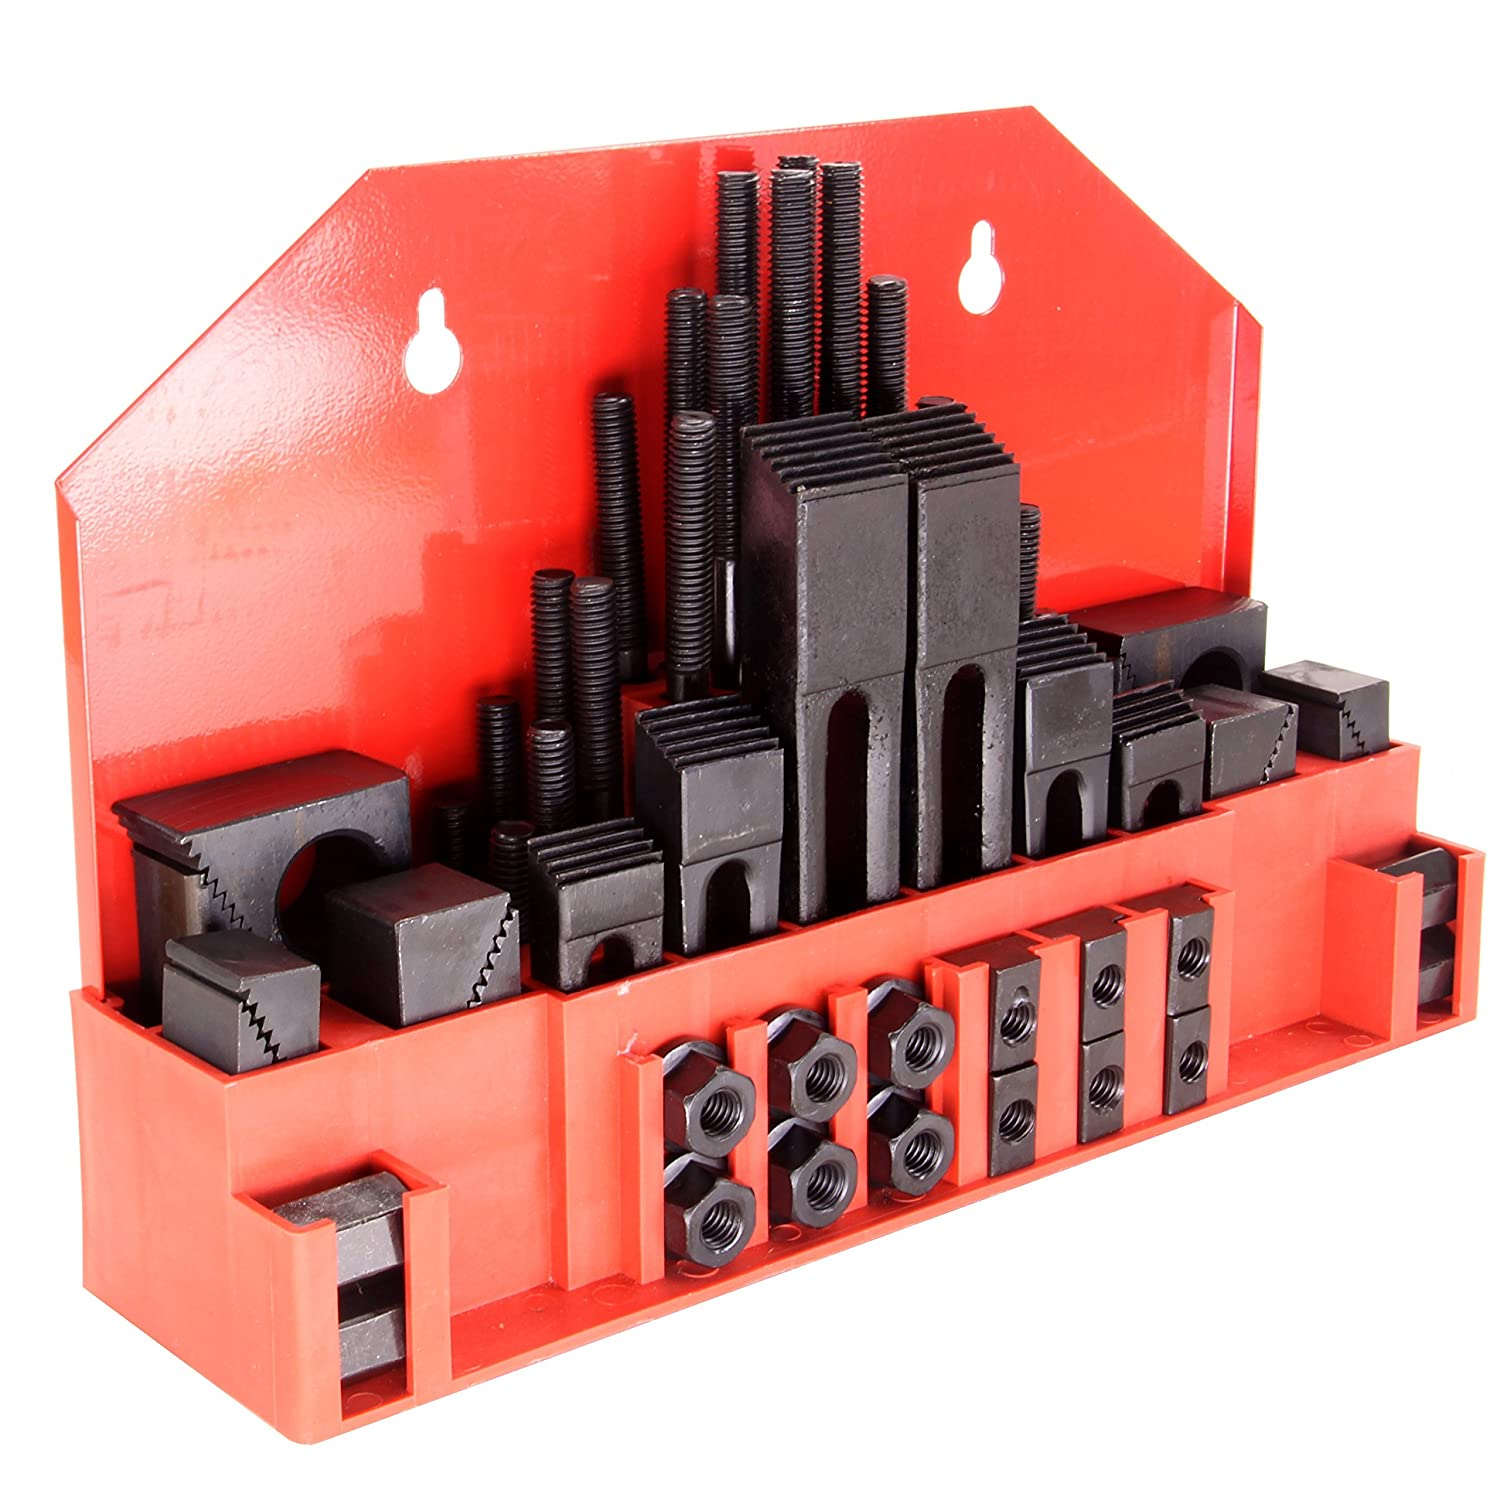 58 Pc 1 2 Slot 3 8 16 Stud Hold Down Clamp Clamping Set Kit Bridgeport Mill Home Improvement